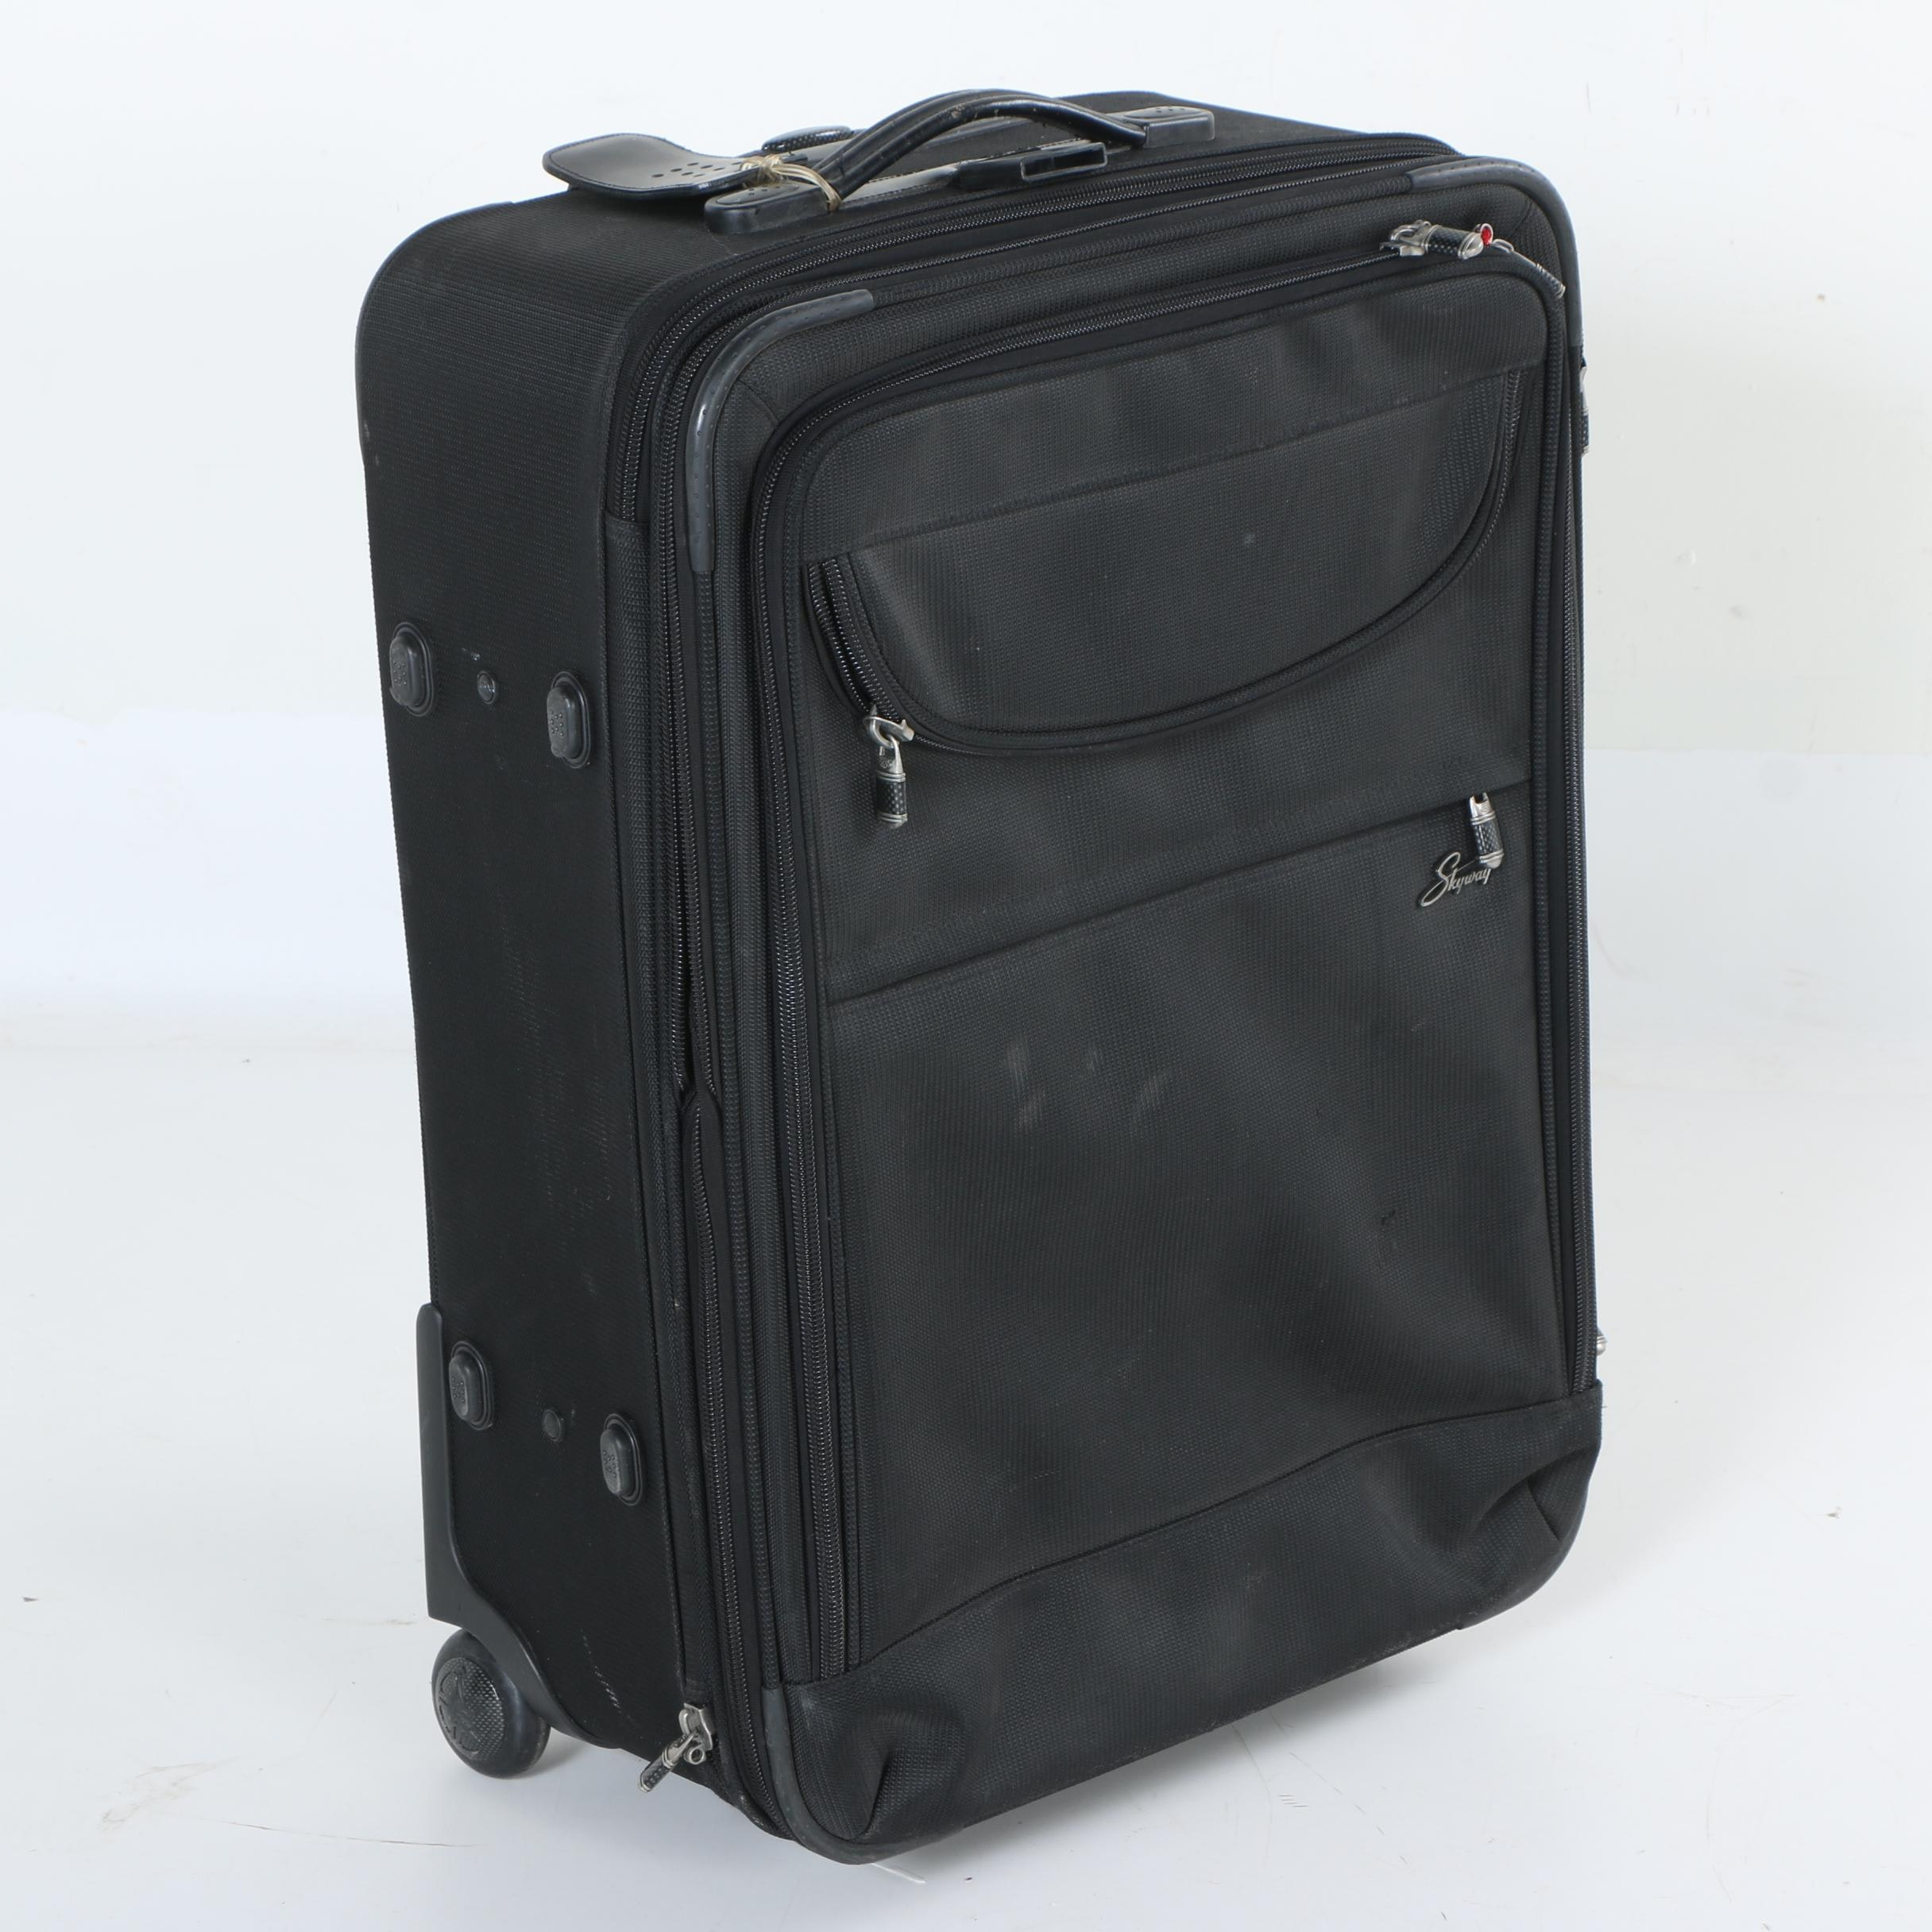 Black Suitcase by Skyway